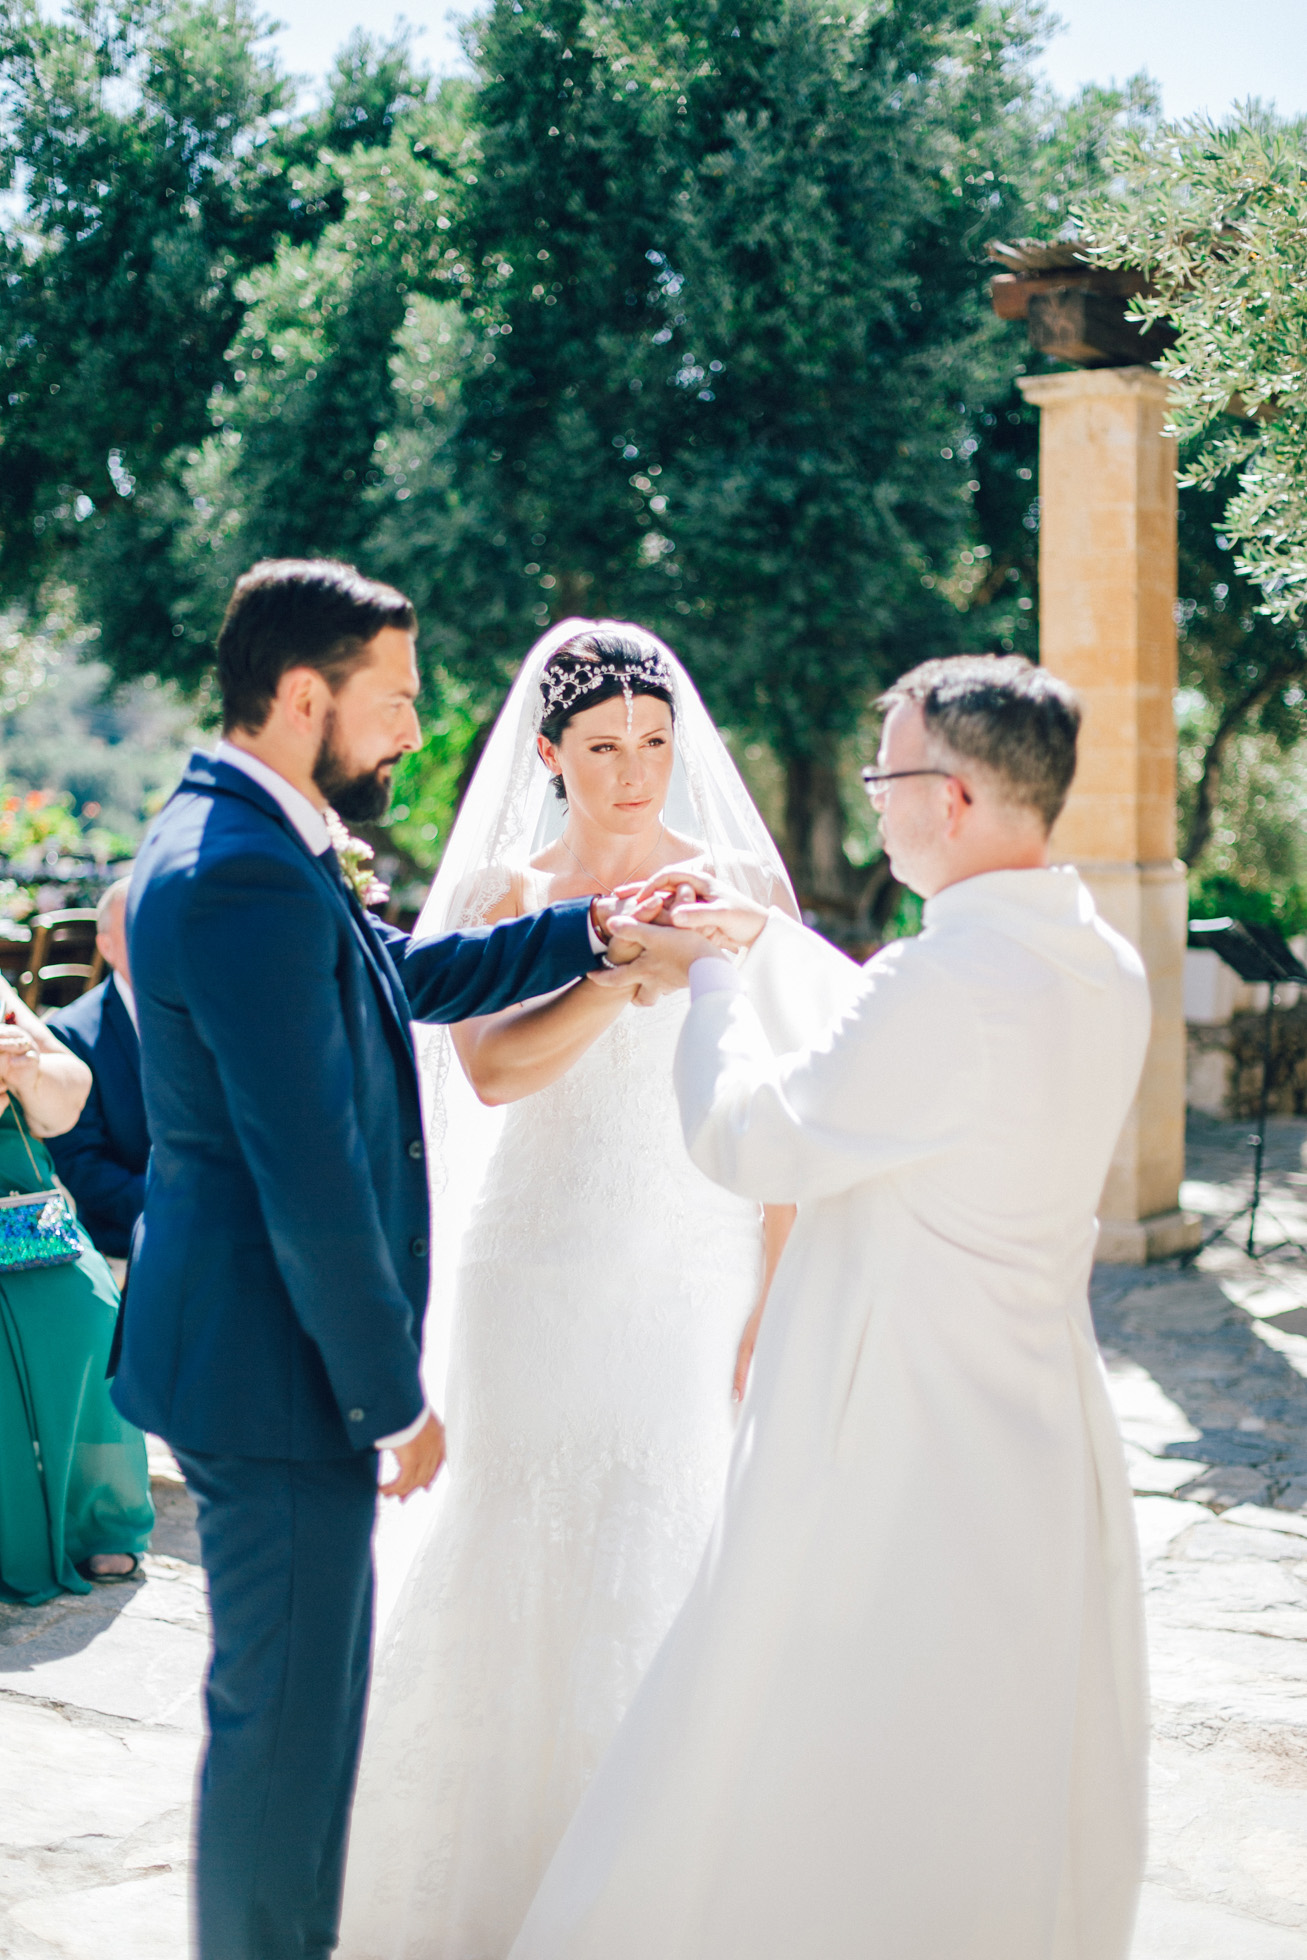 Candid image of an elegant bride and groom getting married in Agreco Farm in Crete, Greece, captured by their wedding photographer.